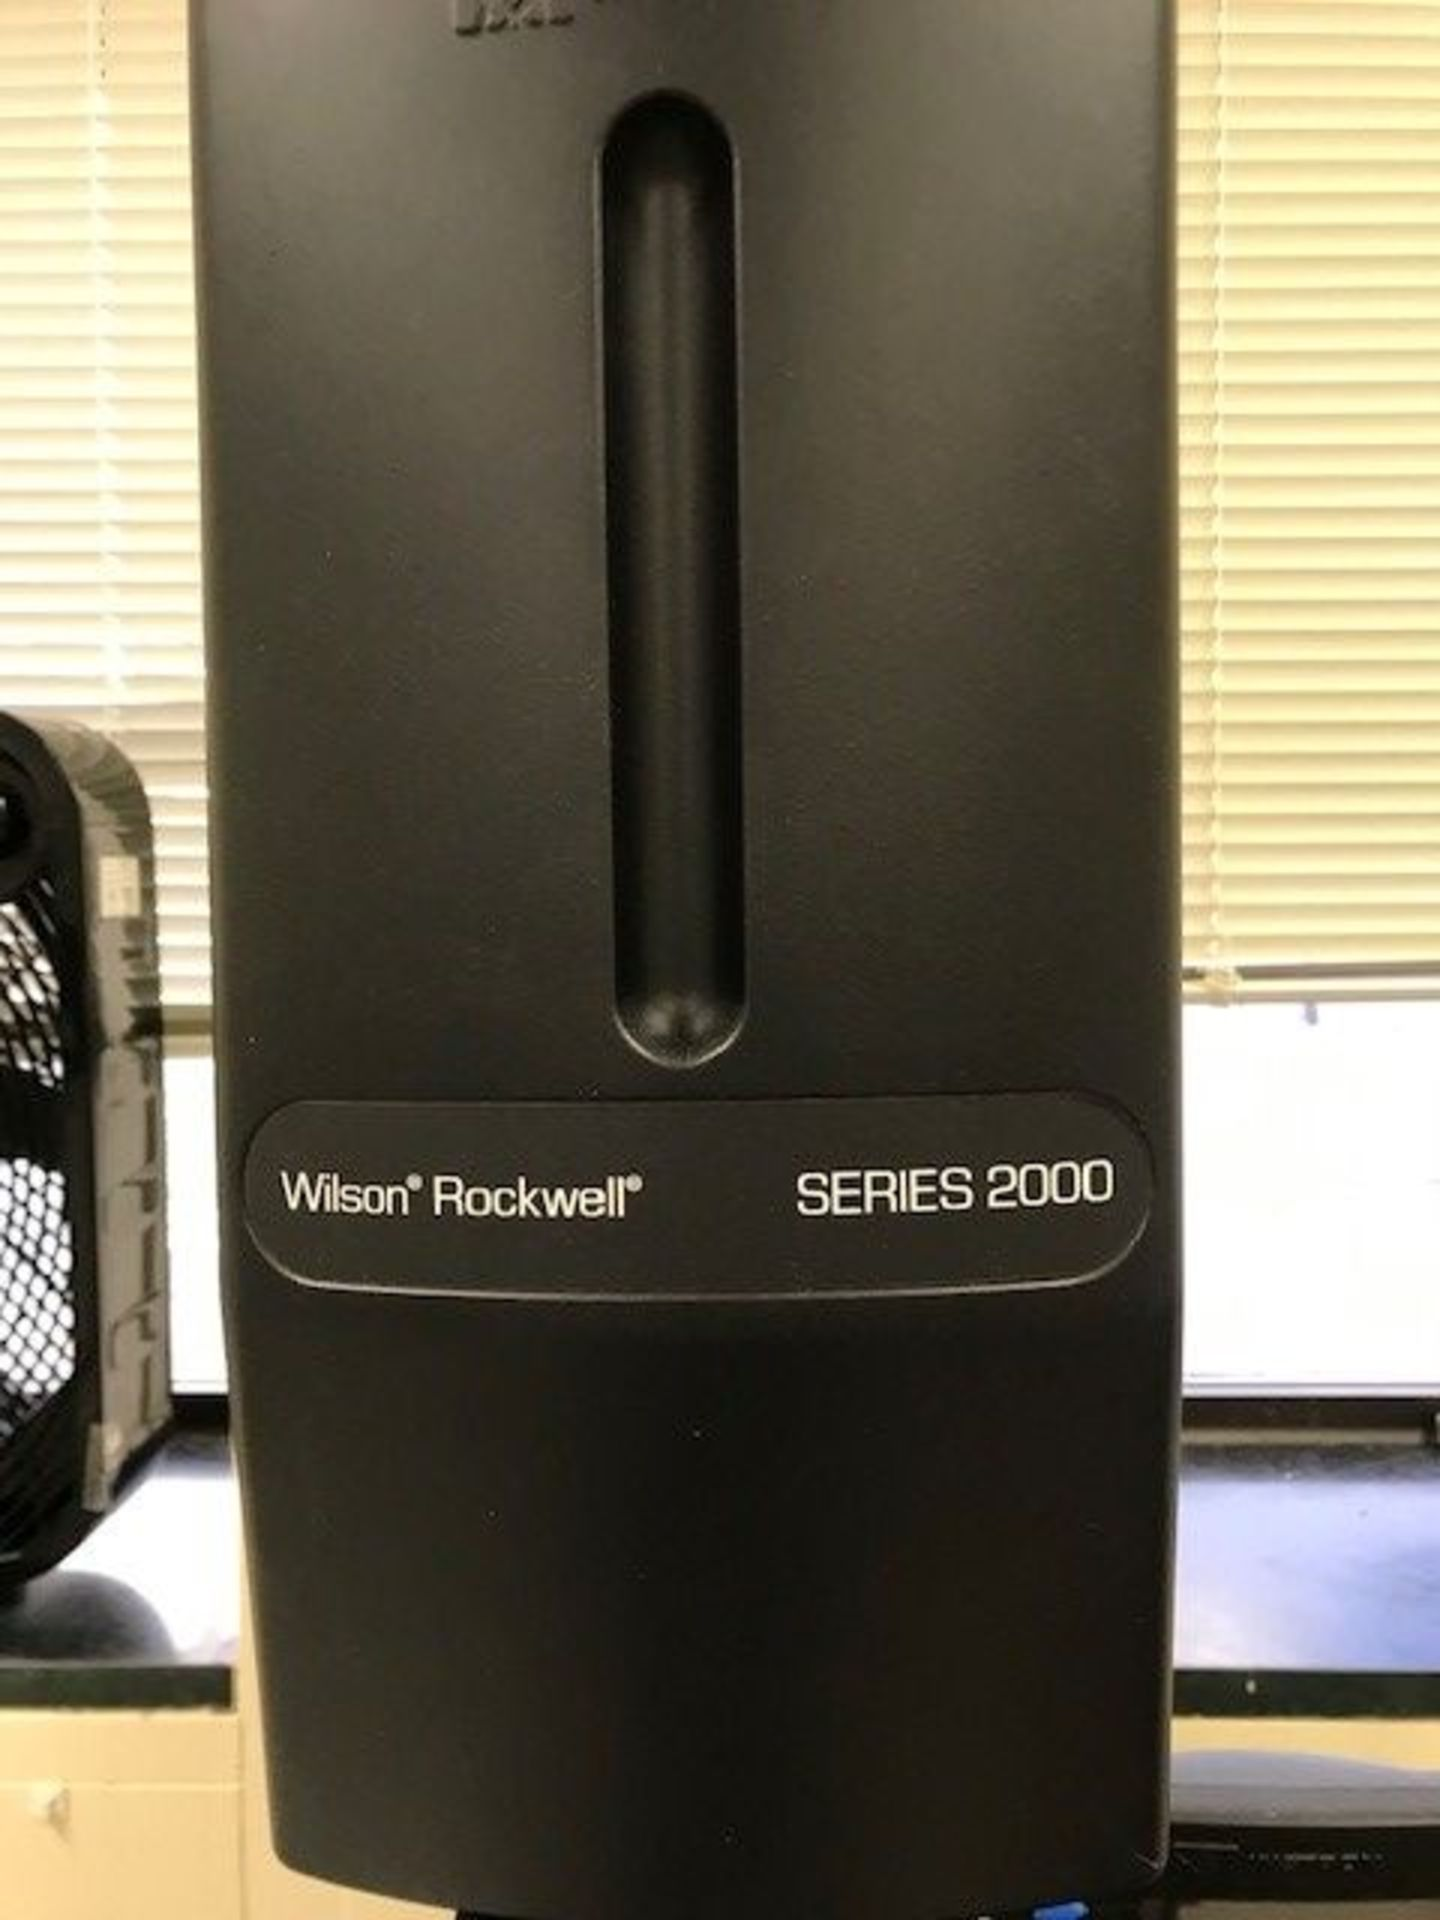 Wilson Rockwell Series 2000 Instron - Image 4 of 5